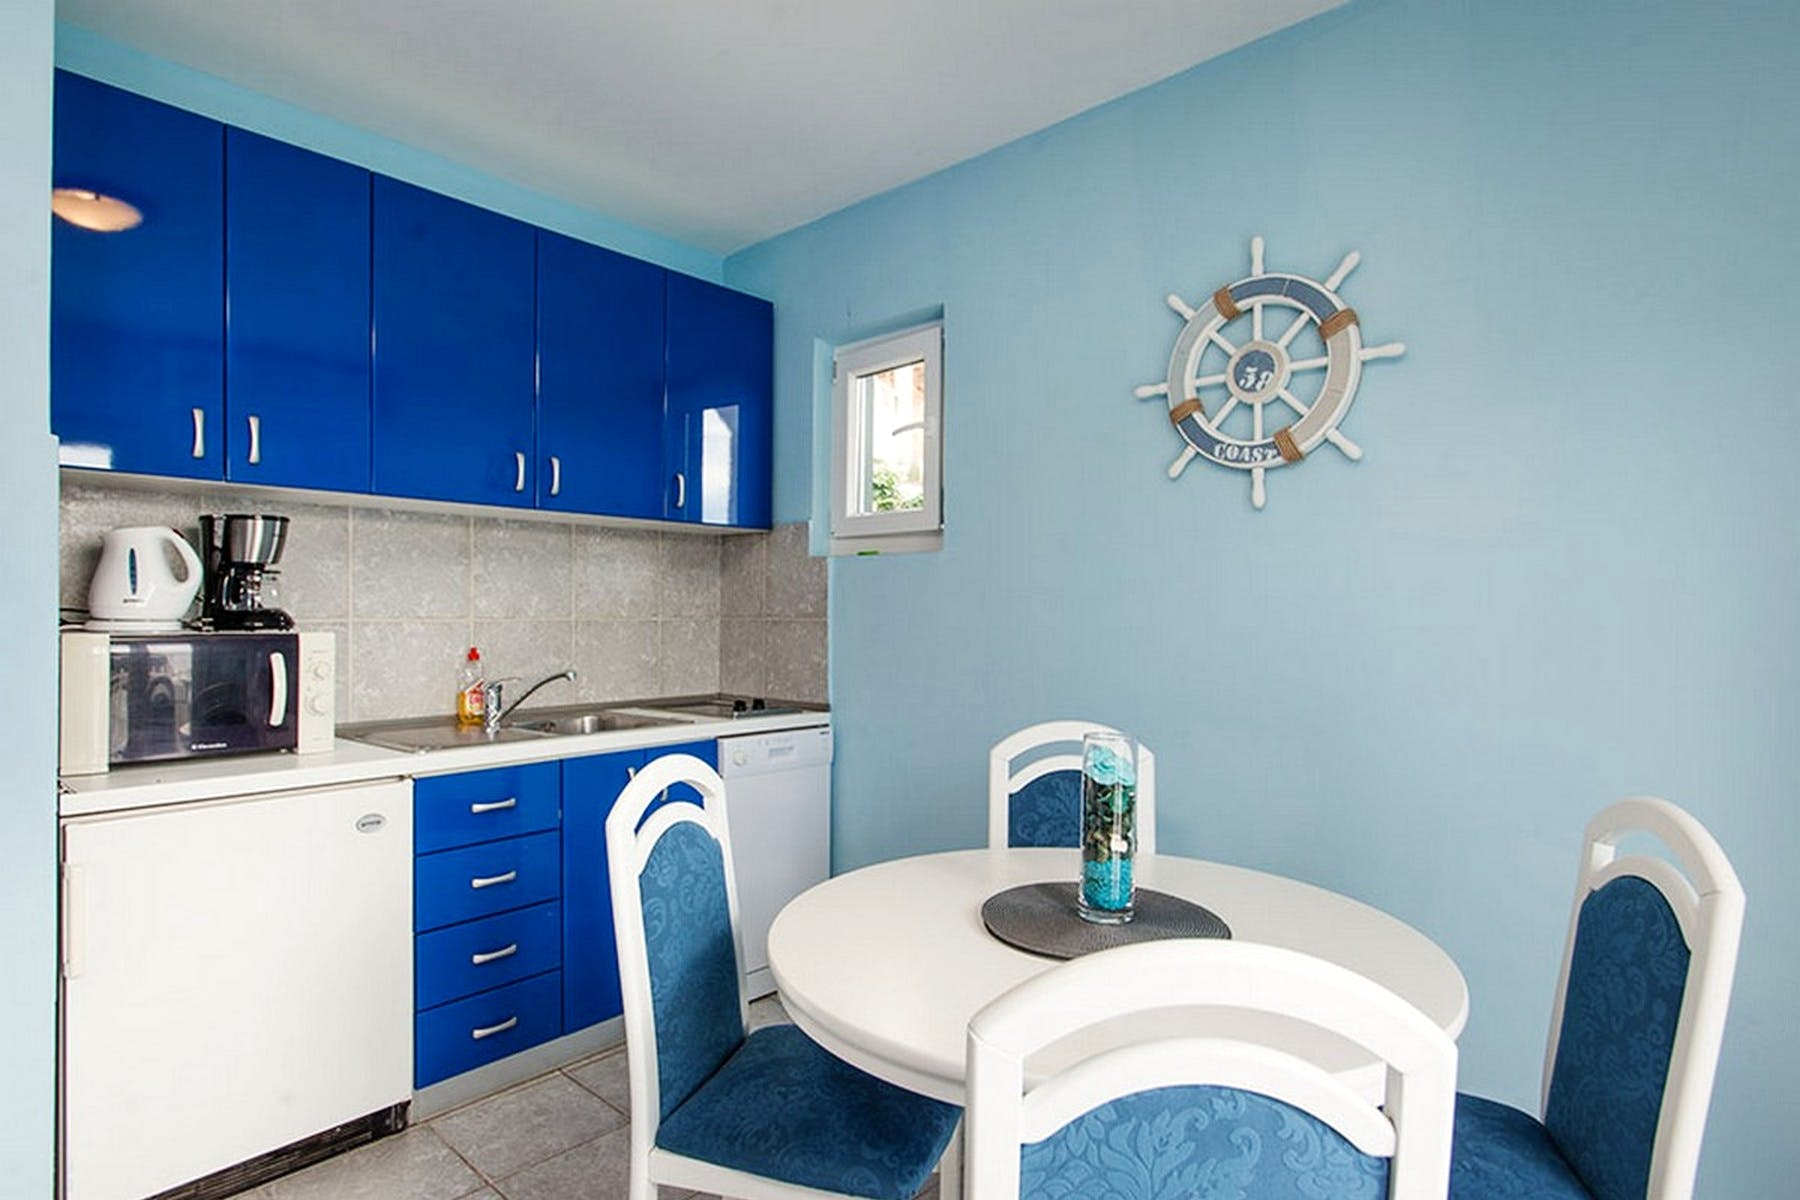 Kitchen decorated in blue and white